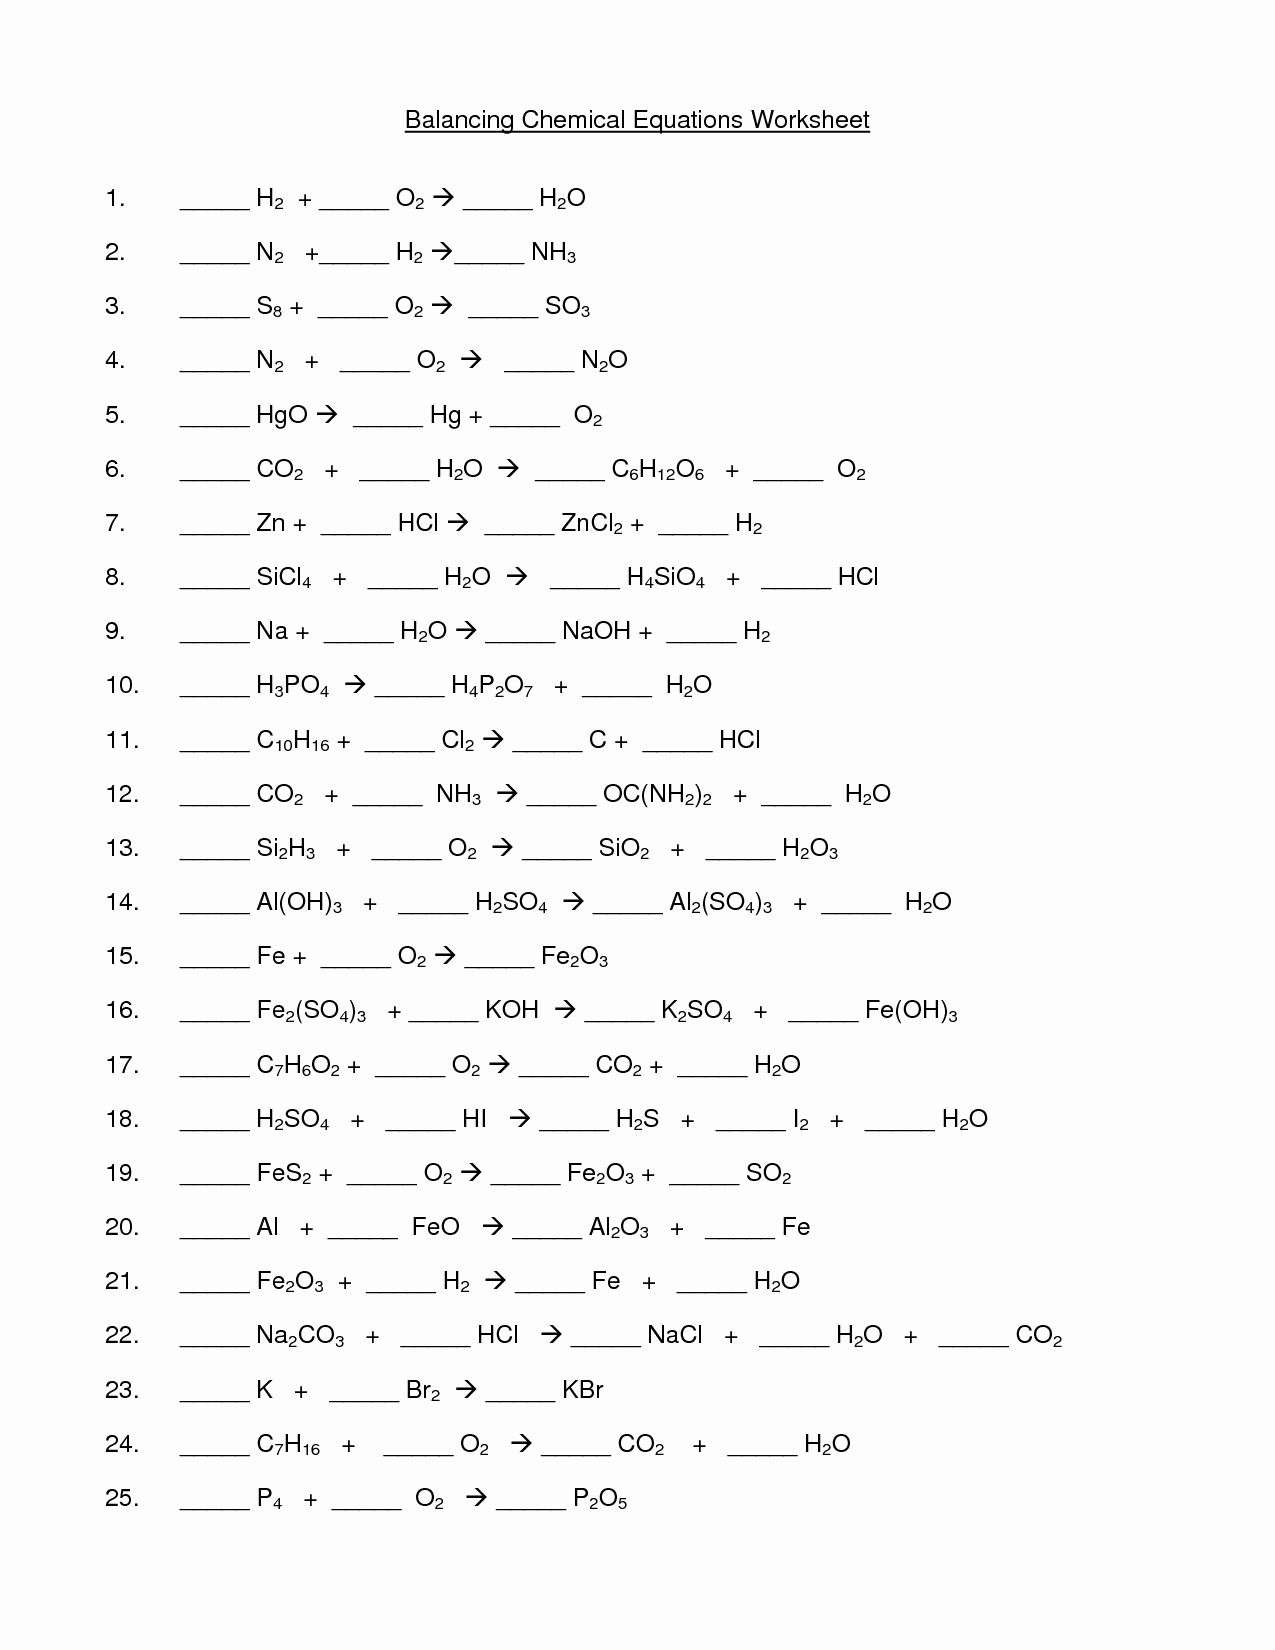 50 Balancing Equations Worksheet Answers Chemistry Chessmuseum Template Library Chemical Equation Equations Balancing Equations